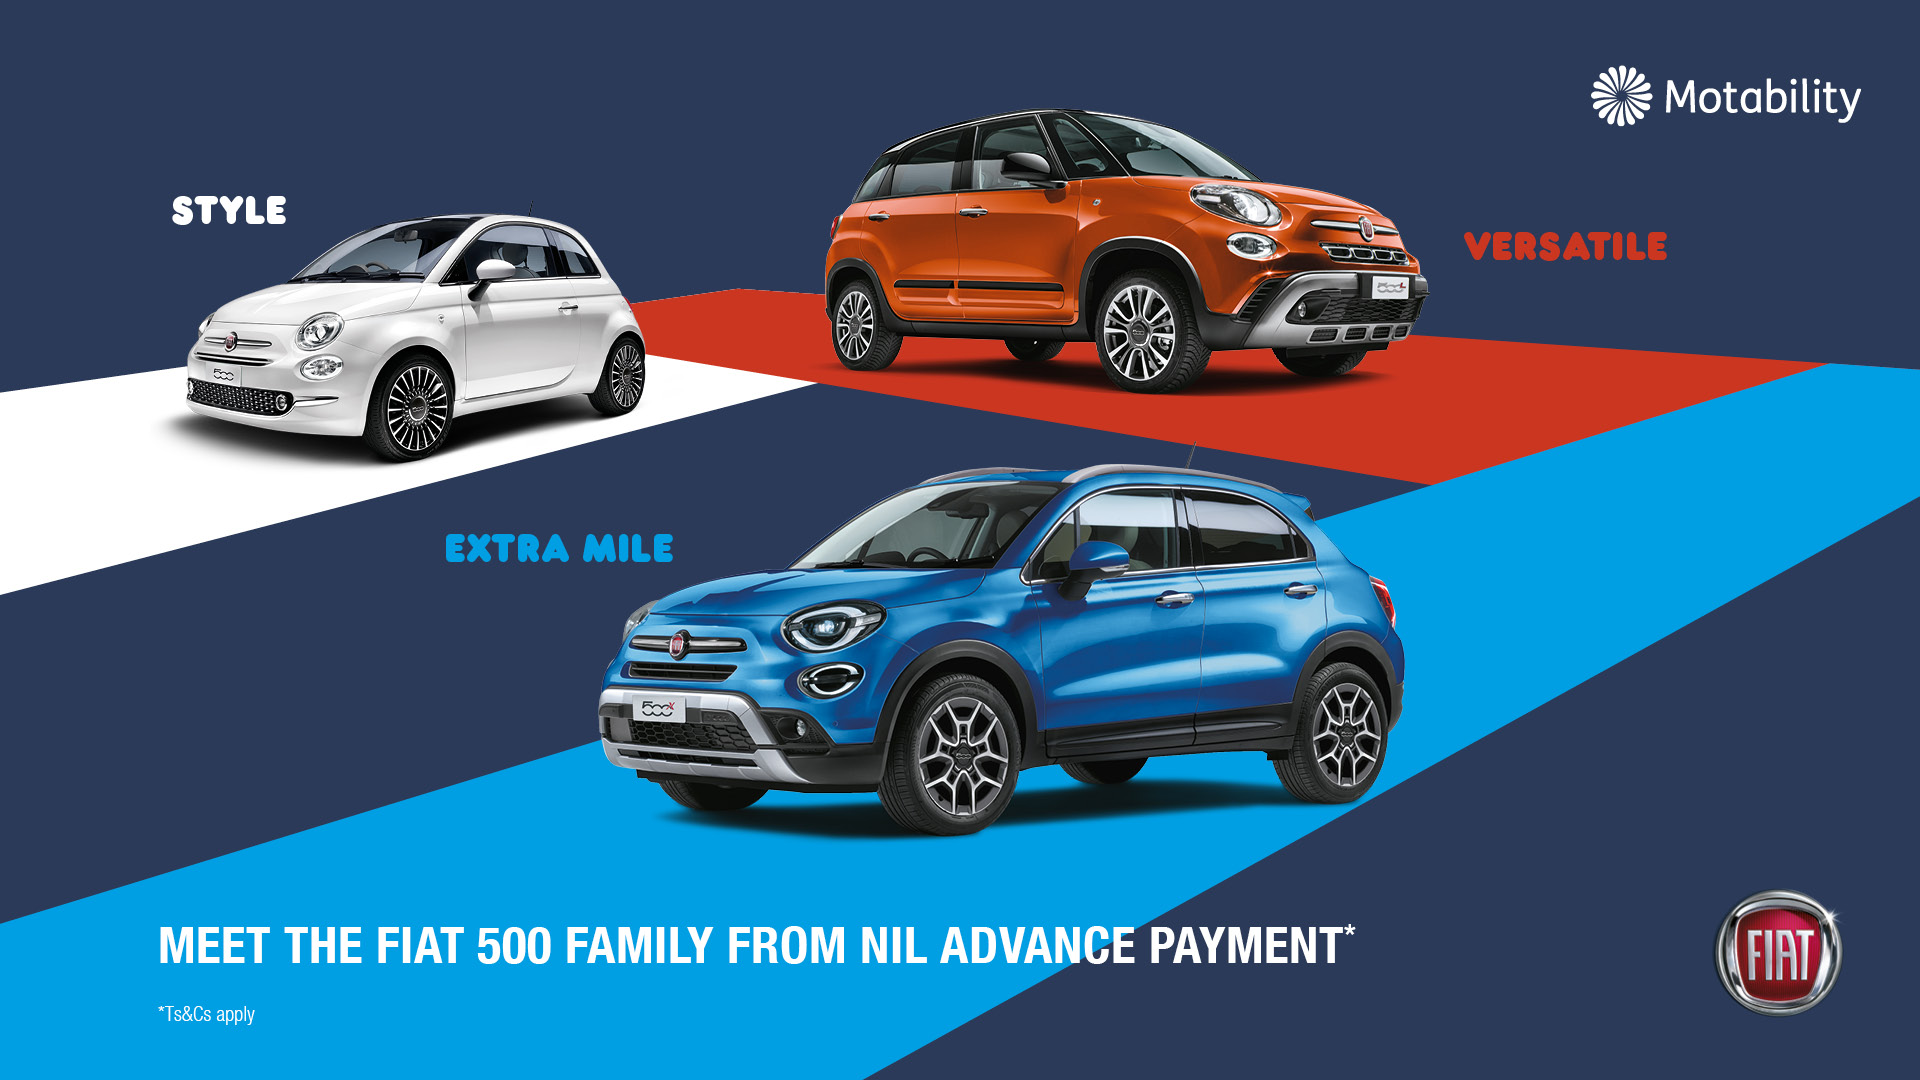 37268-FIAT-500-Family-Motability_Static-Banner-1920x1080